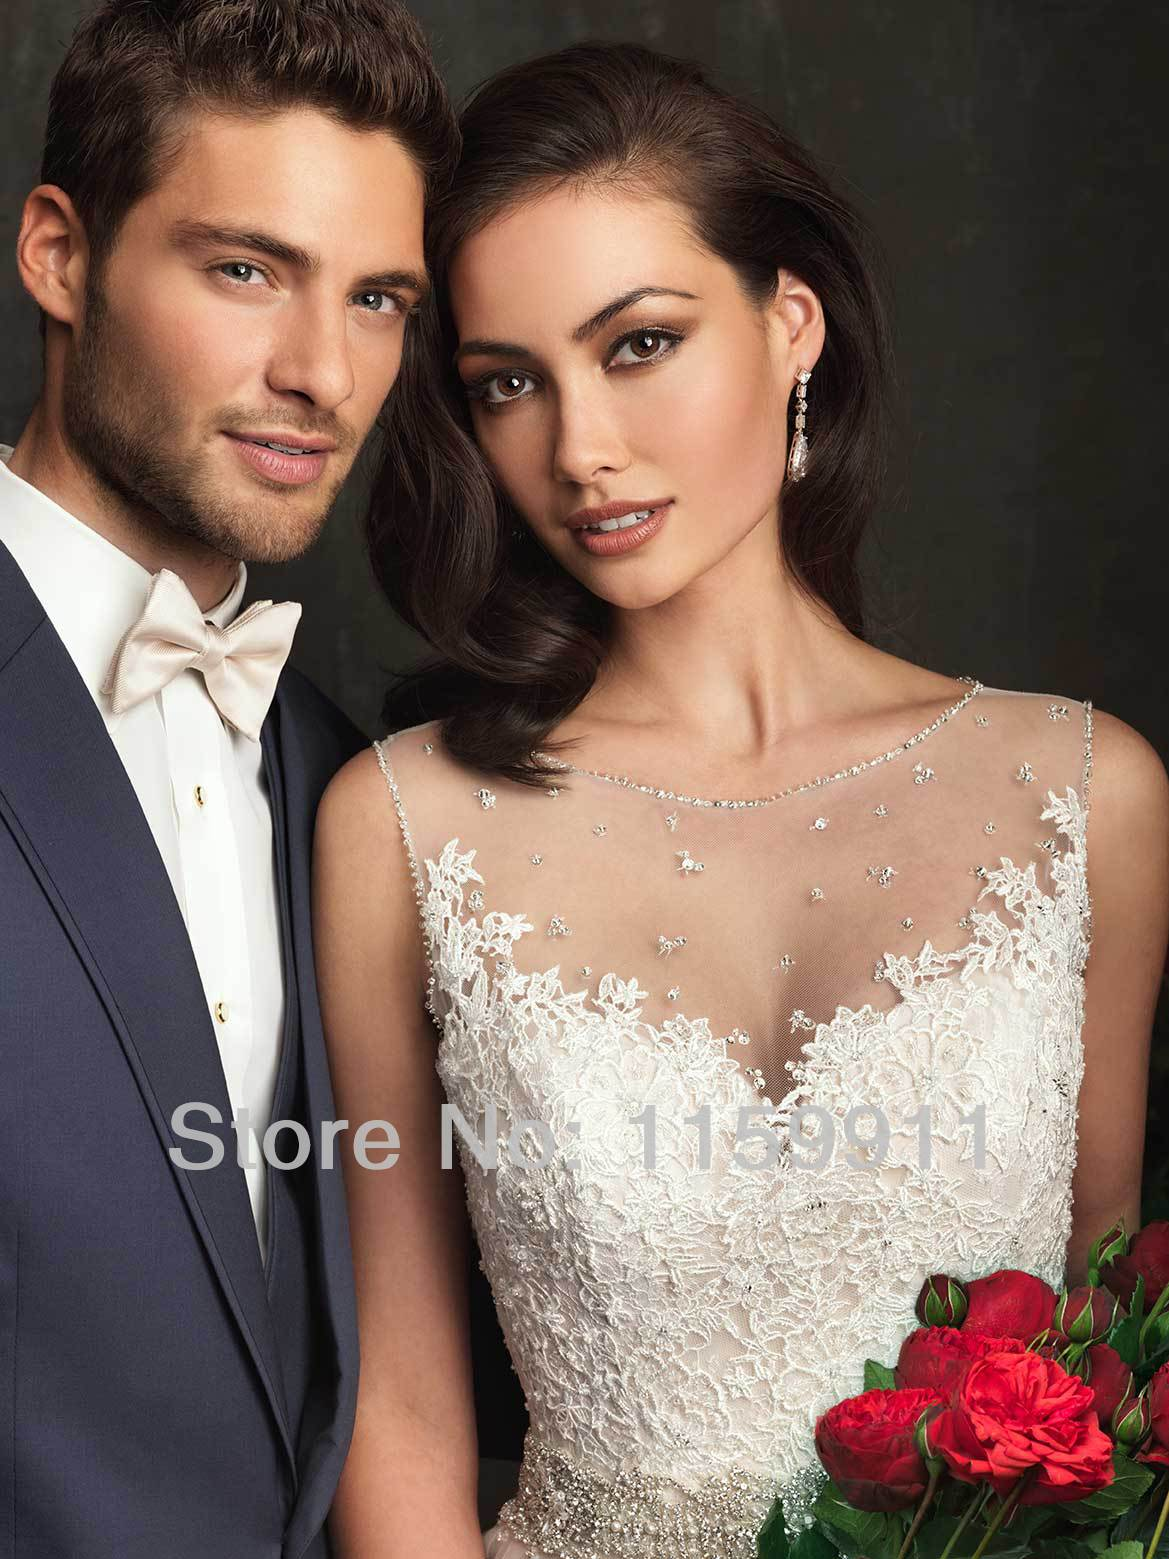 Champagne Wedding Dress Knee Length Dresses Nicole Miller Purple Long  Sleeved Ball Gown Floor Length Court Tr 2015 Free Shipping-in Wedding  Dresses from ... f471522ce465